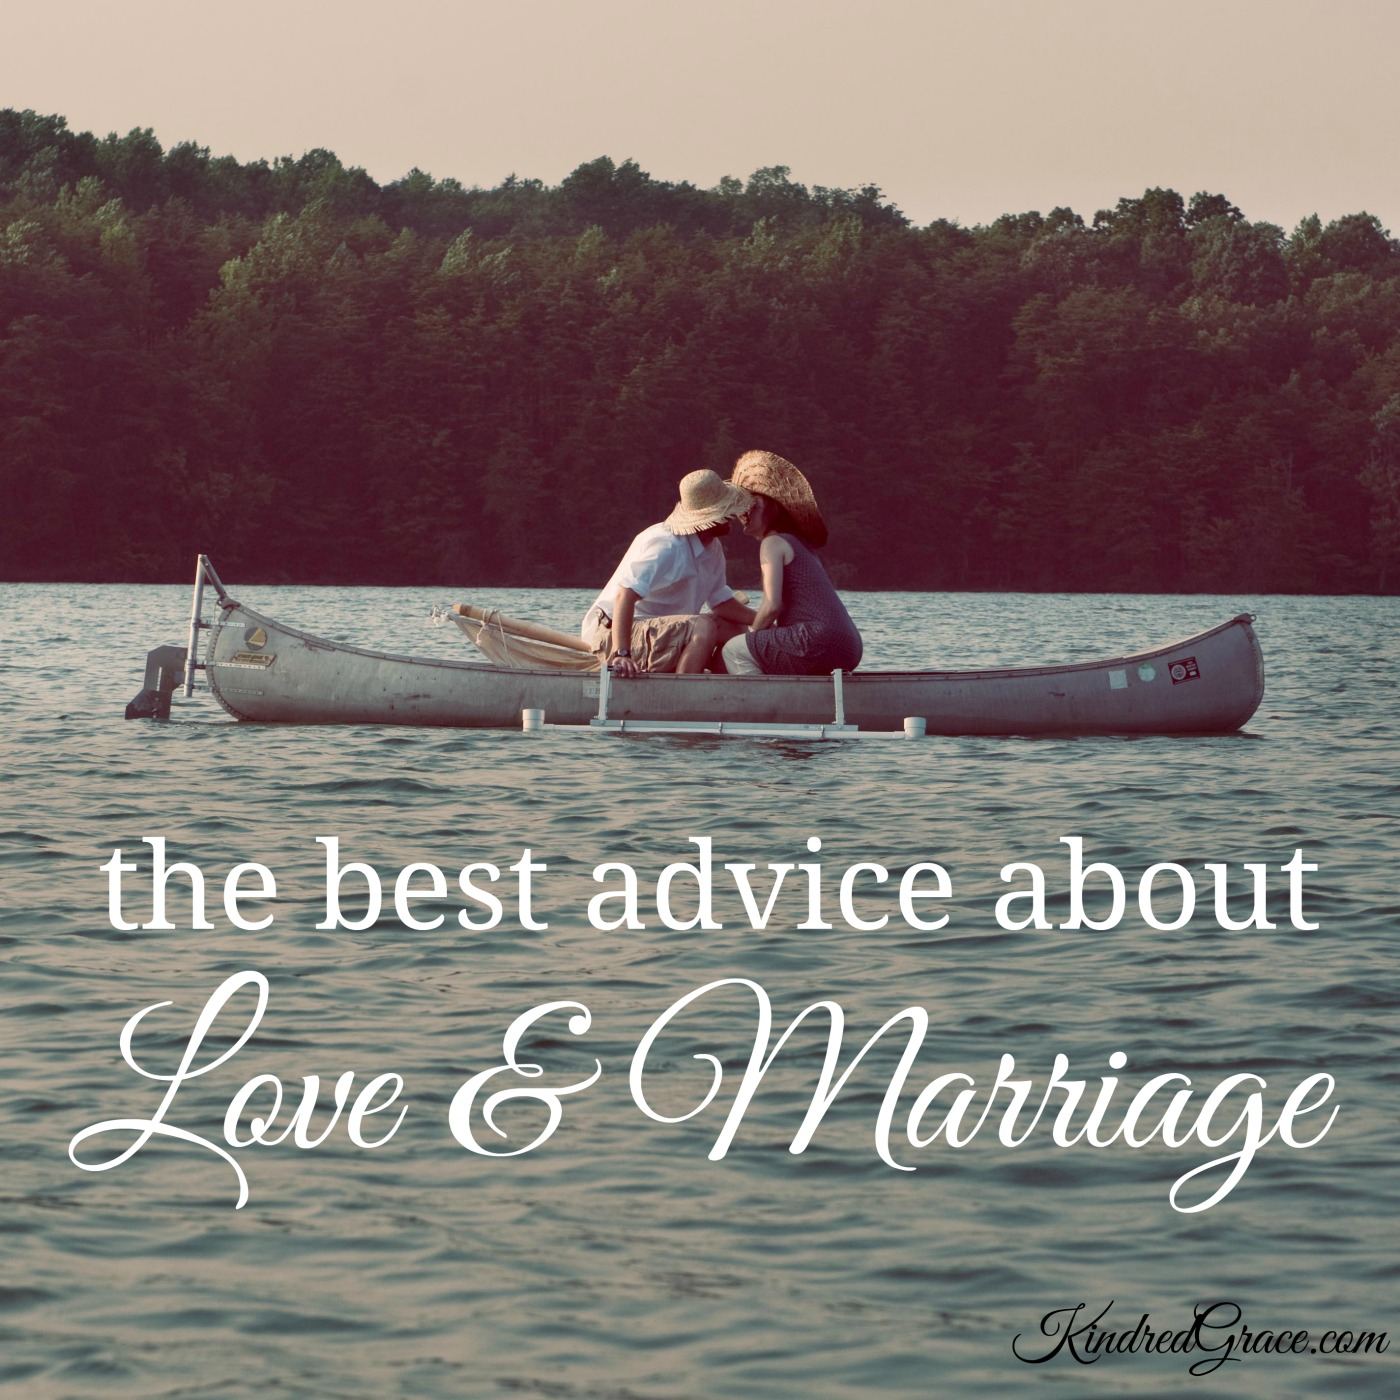 The Best Advice About Love & Marriage